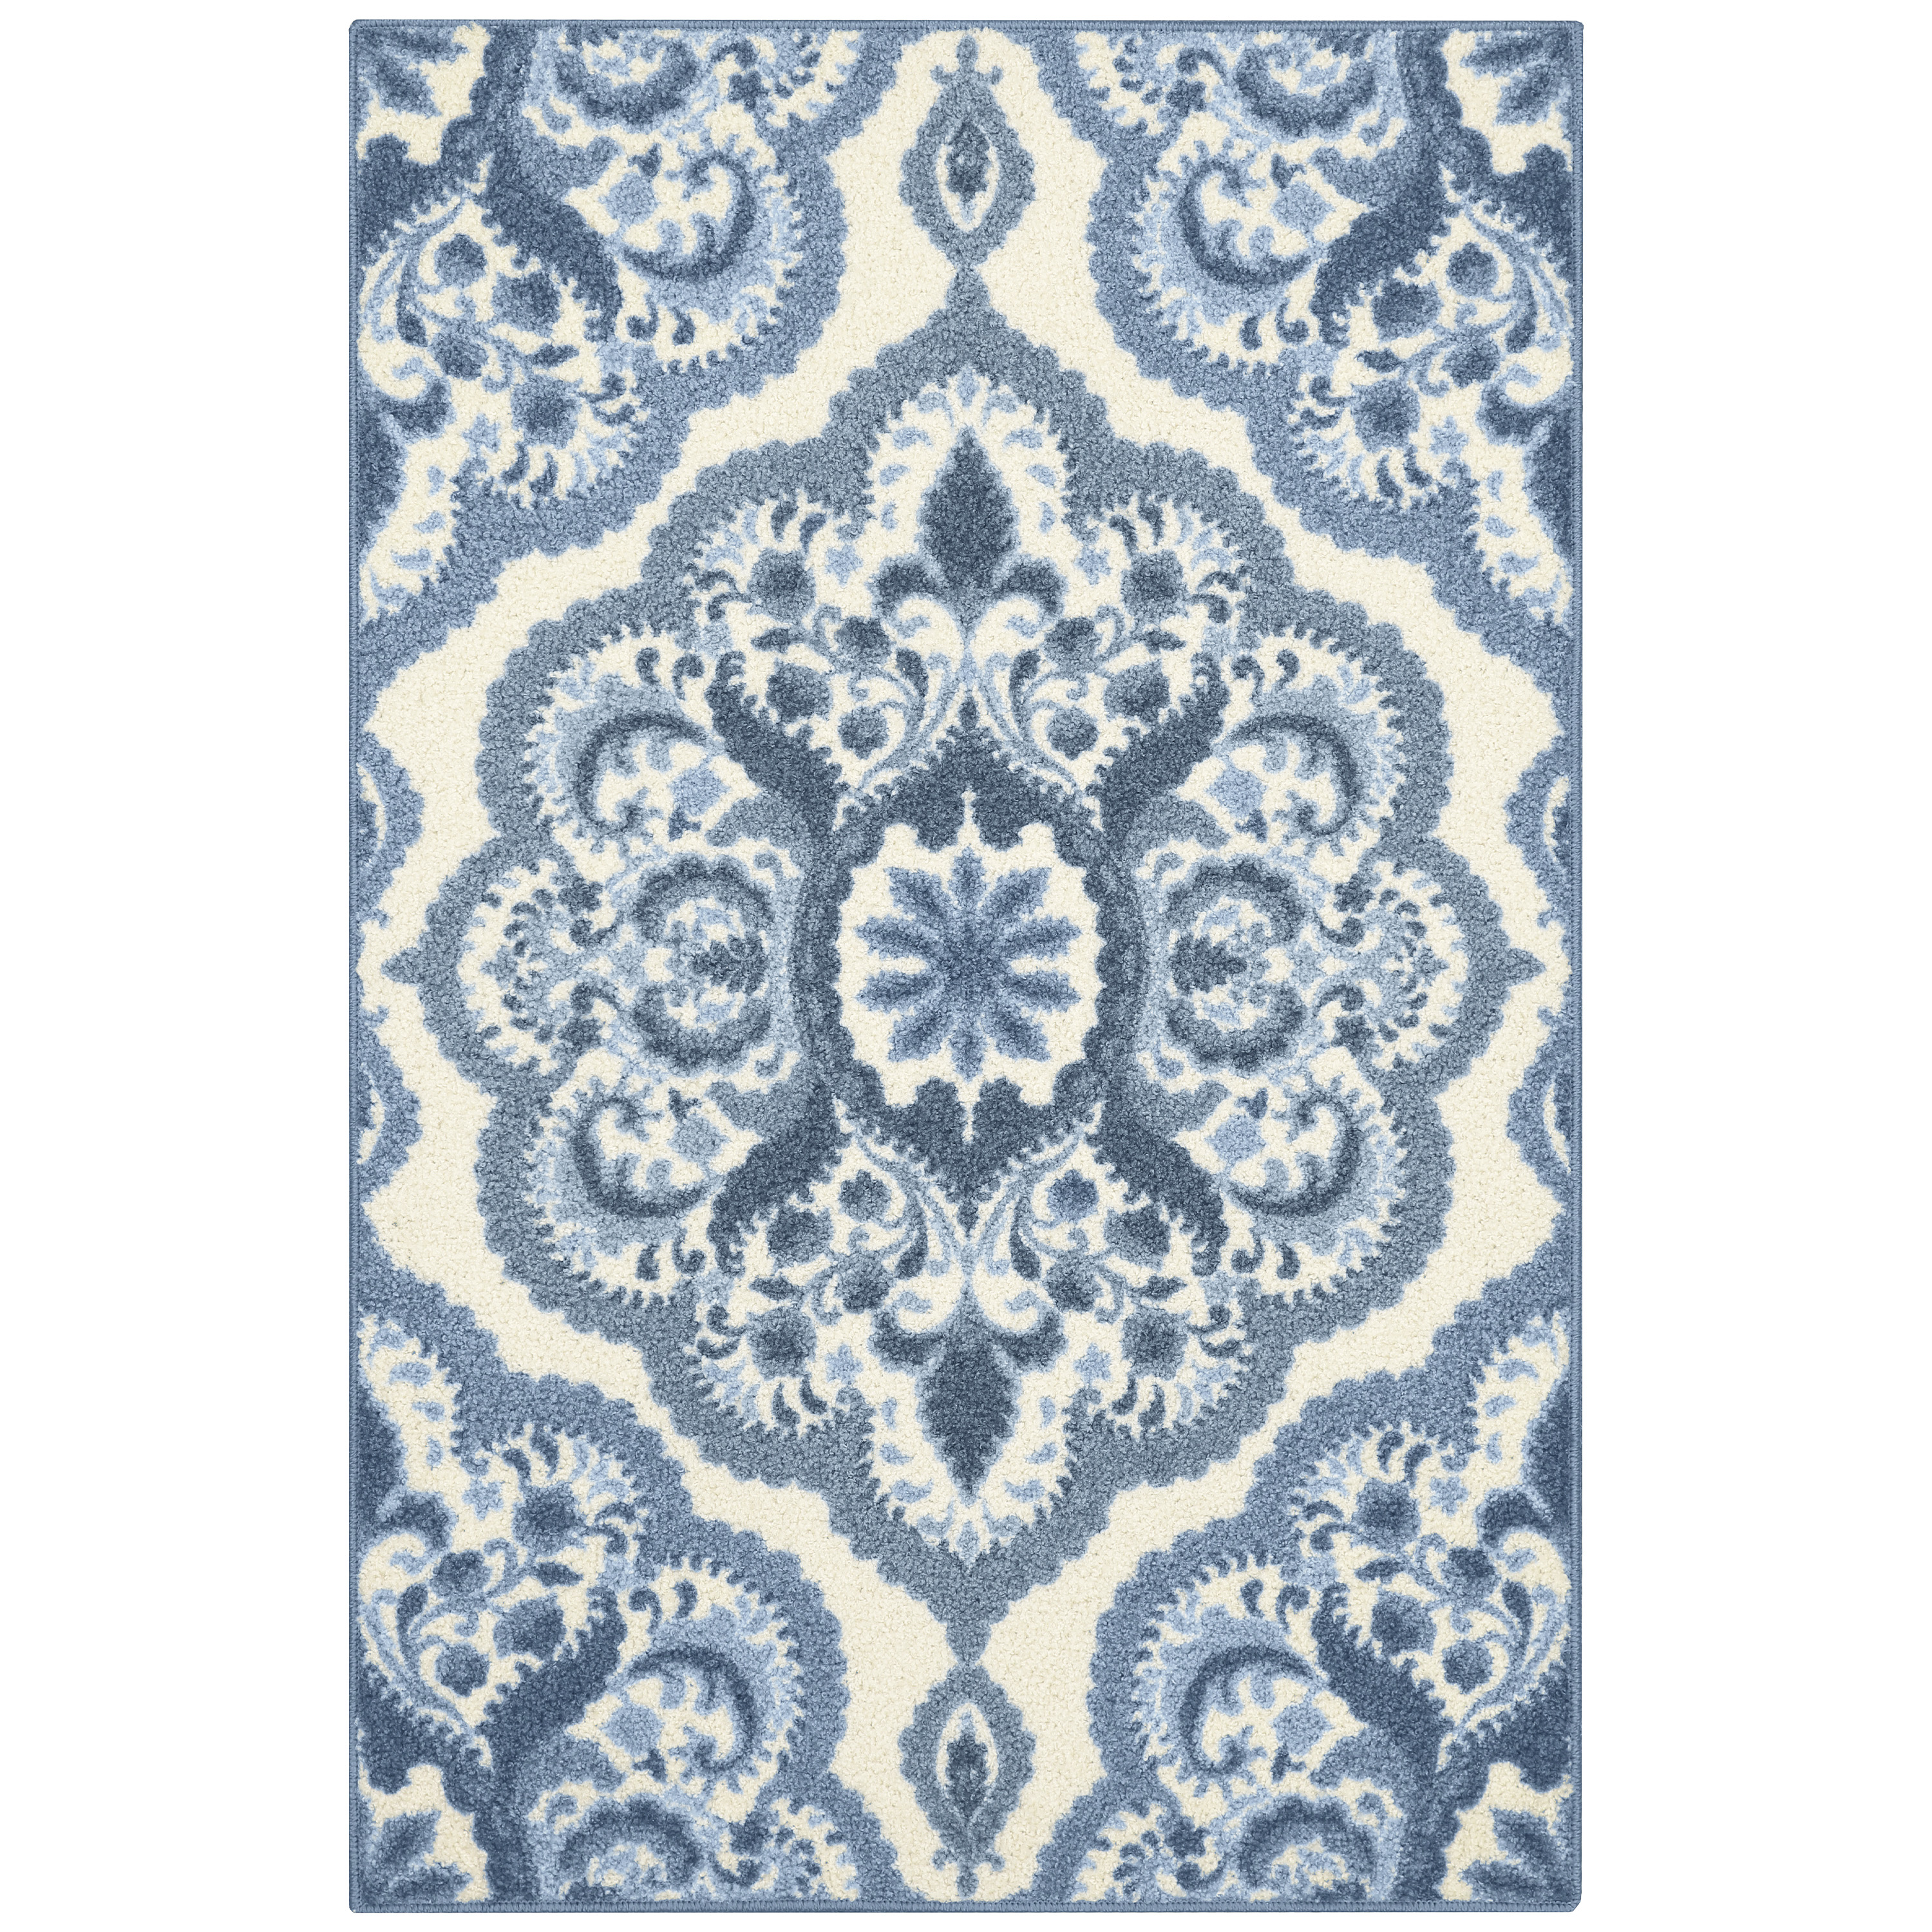 Mainstays Roxanne Area Rug or Runner, Available in 5' x 7', 7' x 10', and more sizes for Living Room, Family Room, Bedroom, Hallway, Non Skid for small rugs, Washable and Spot Clean